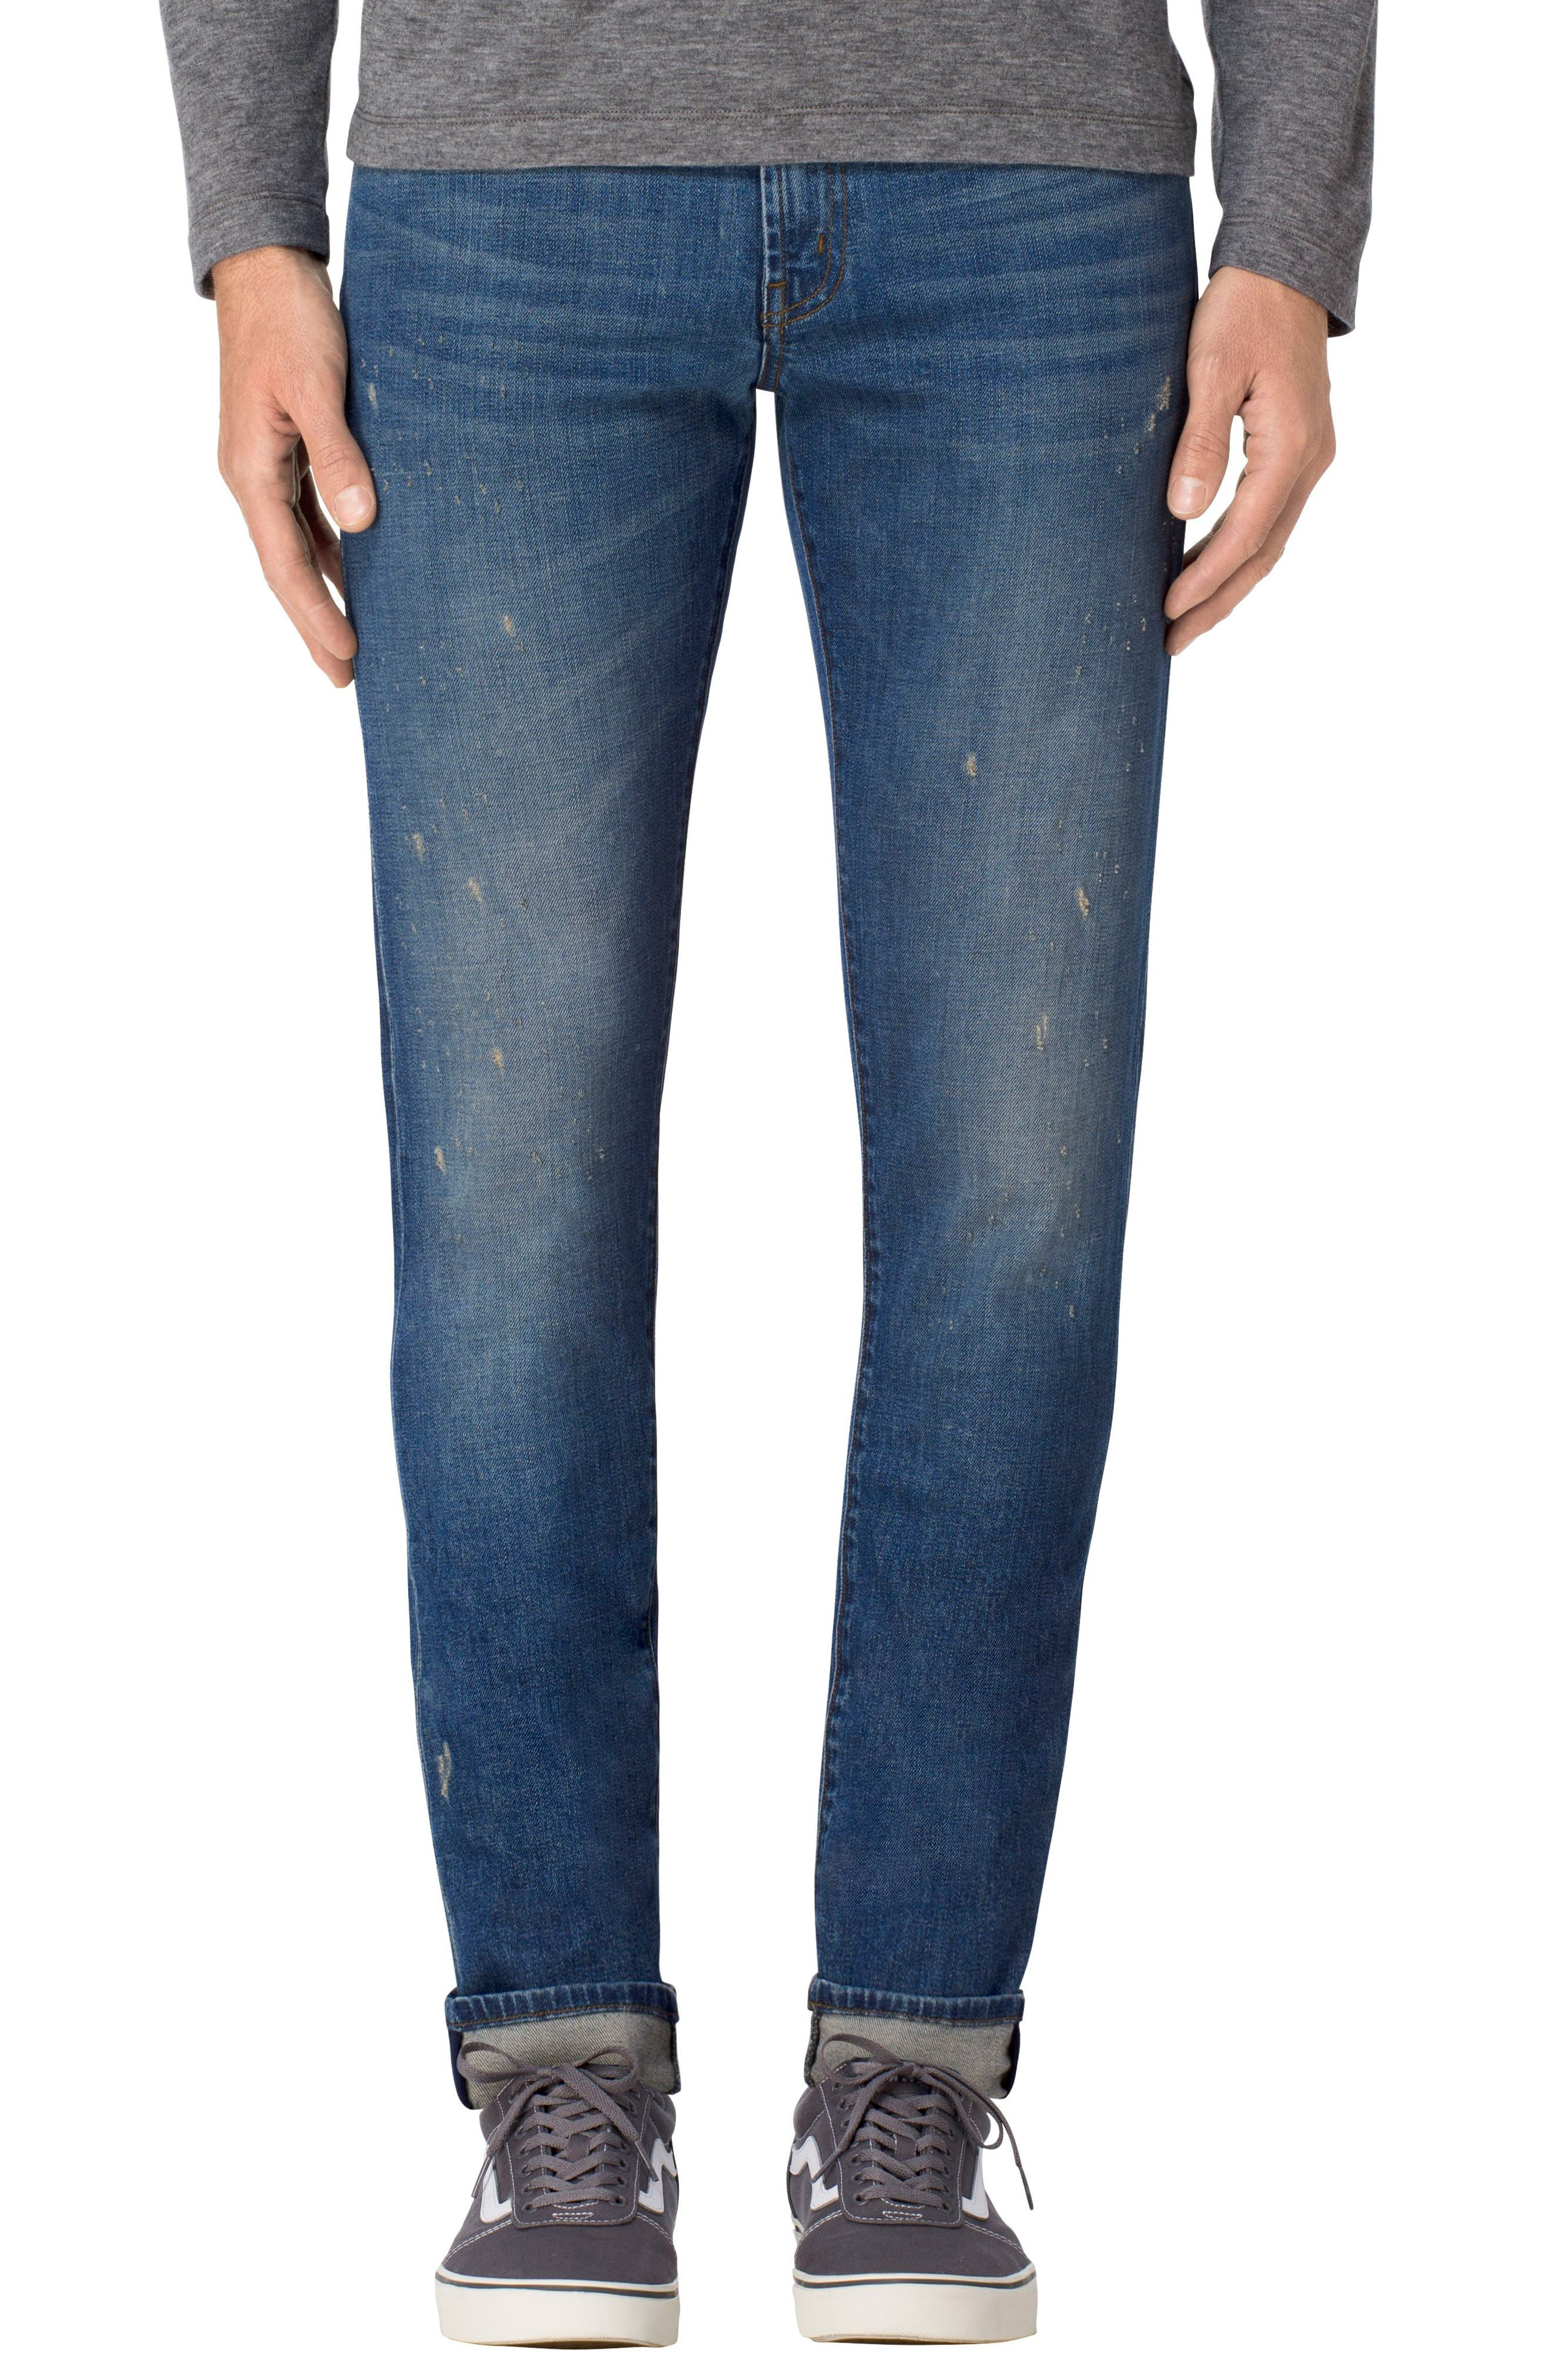 Alternate Image 1 Selected - J Brand Tyler Slim Fit Jeans (Umbra)